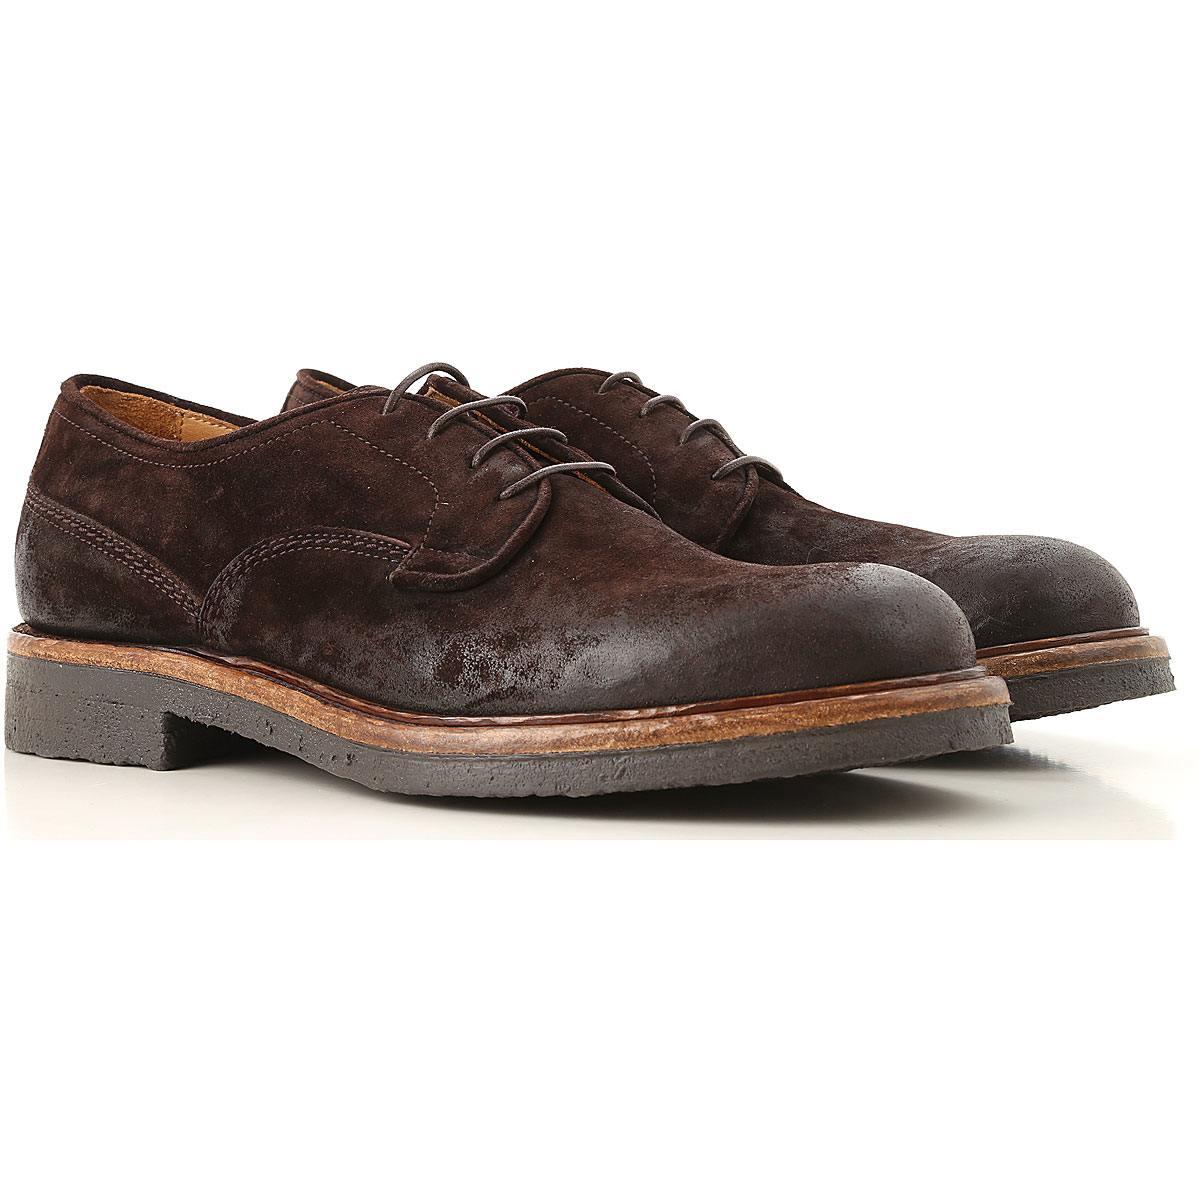 Corvari Lace Up Shoes for Men Oxfords 7 8 9 Derbies and Brogues On Sale in Outlet UK - GOOFASH